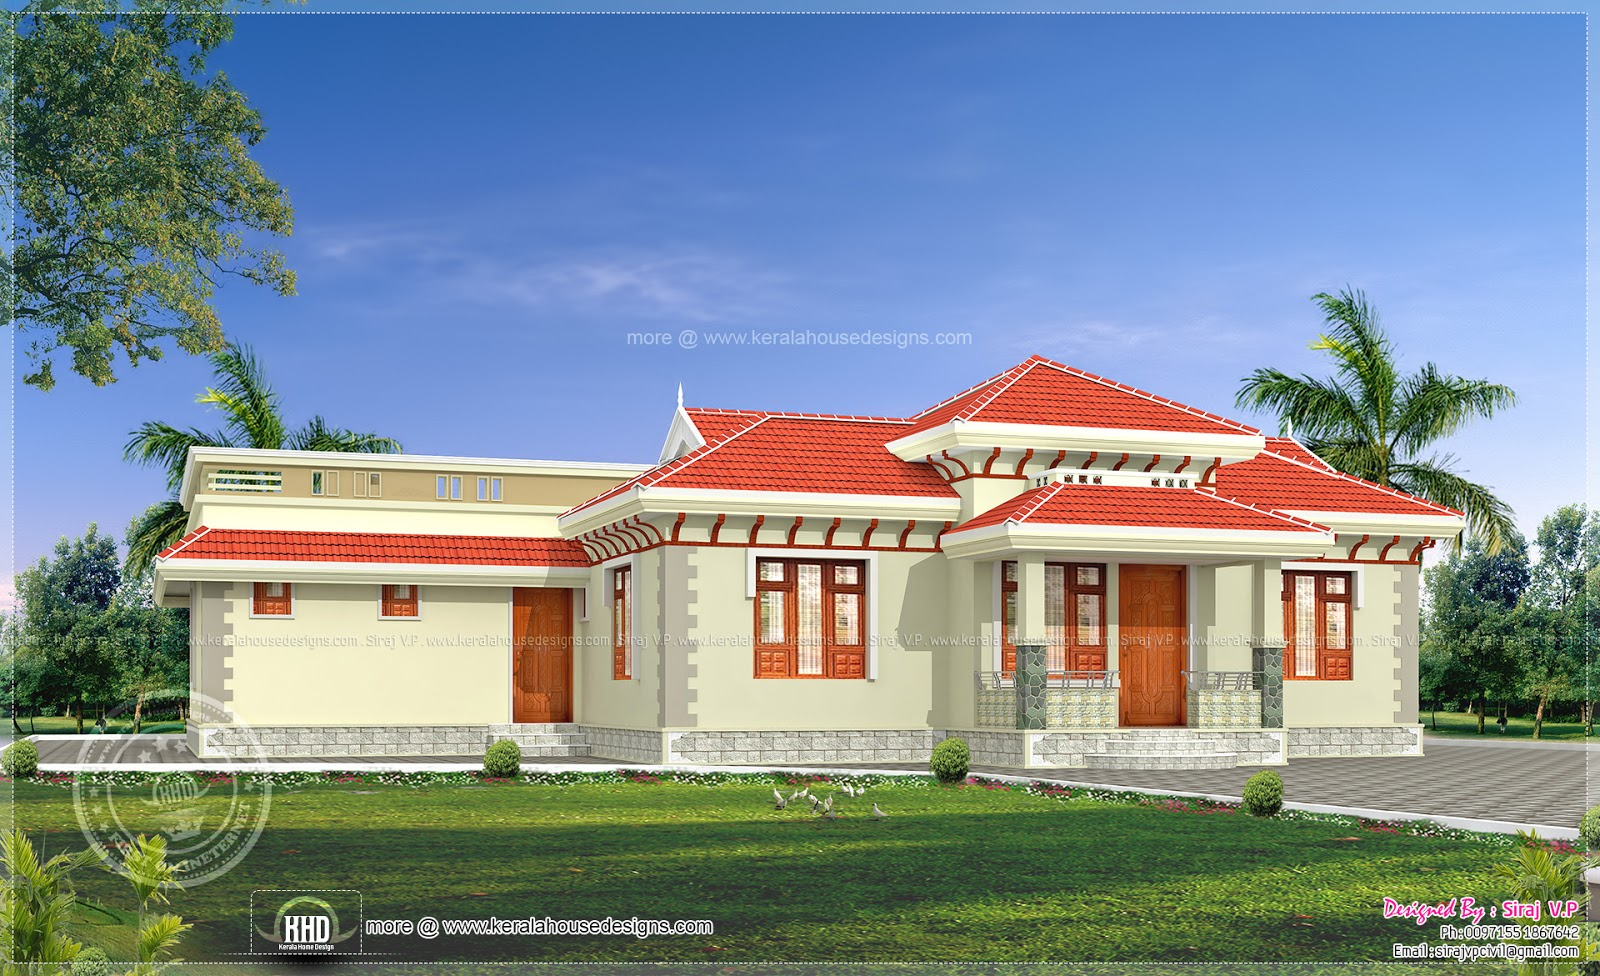 4 Bedroom Traditional Kerala Style Home Kerala Home Design And Floor Plans